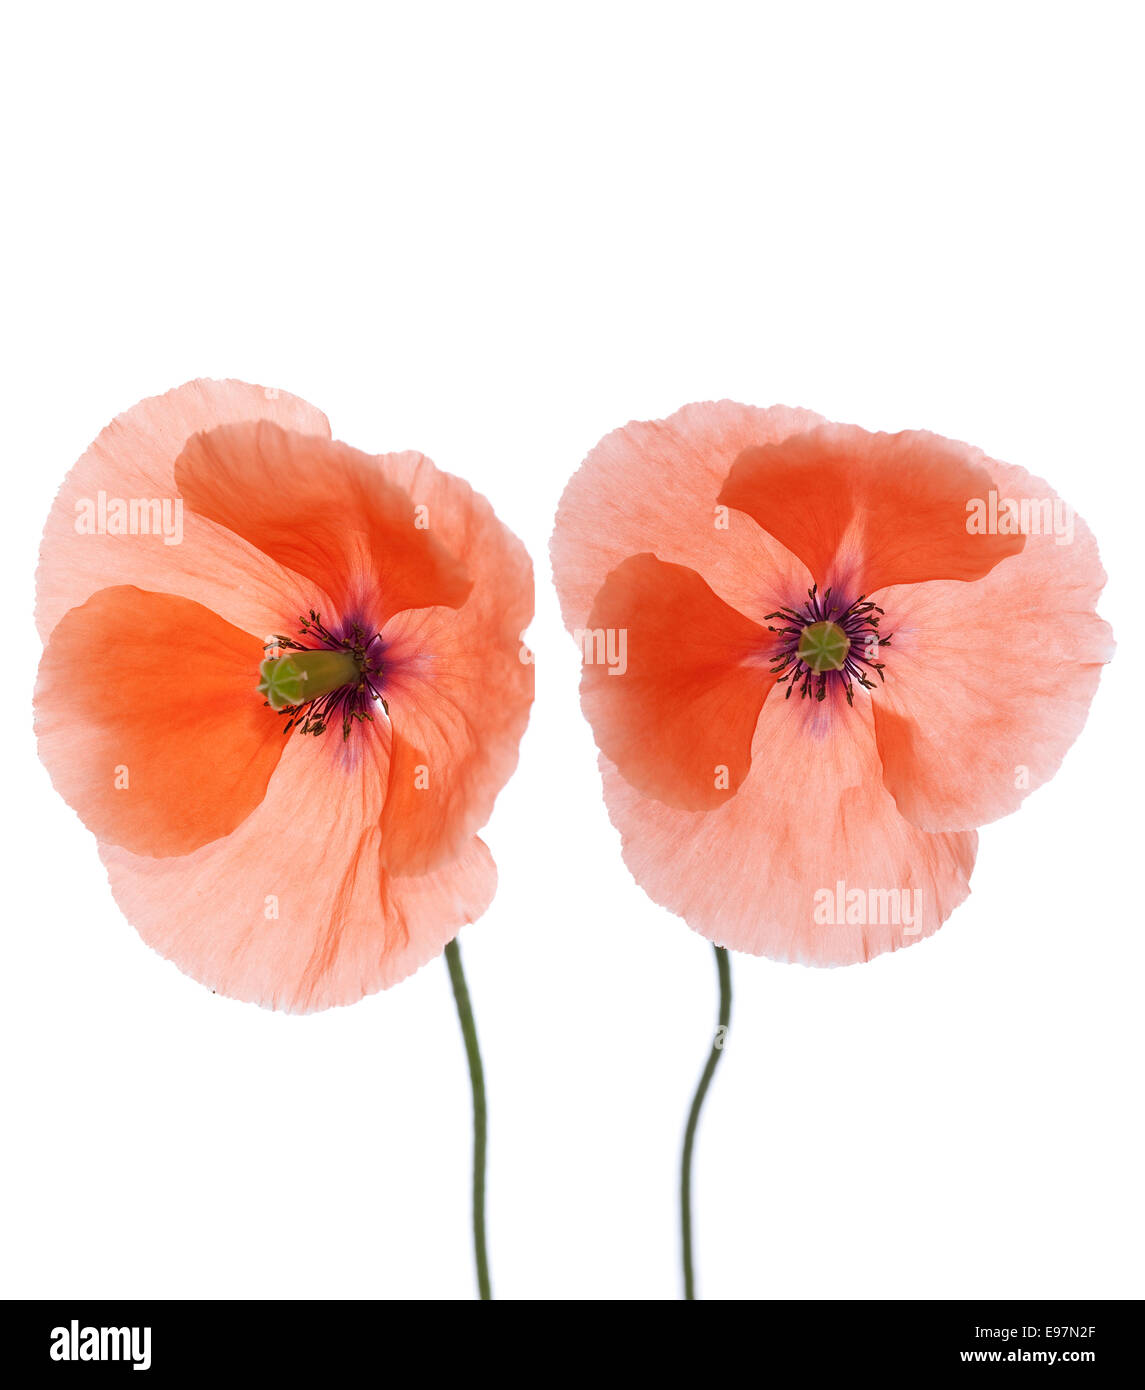 red of poppy (papaver) with stem on white background - Stock Image